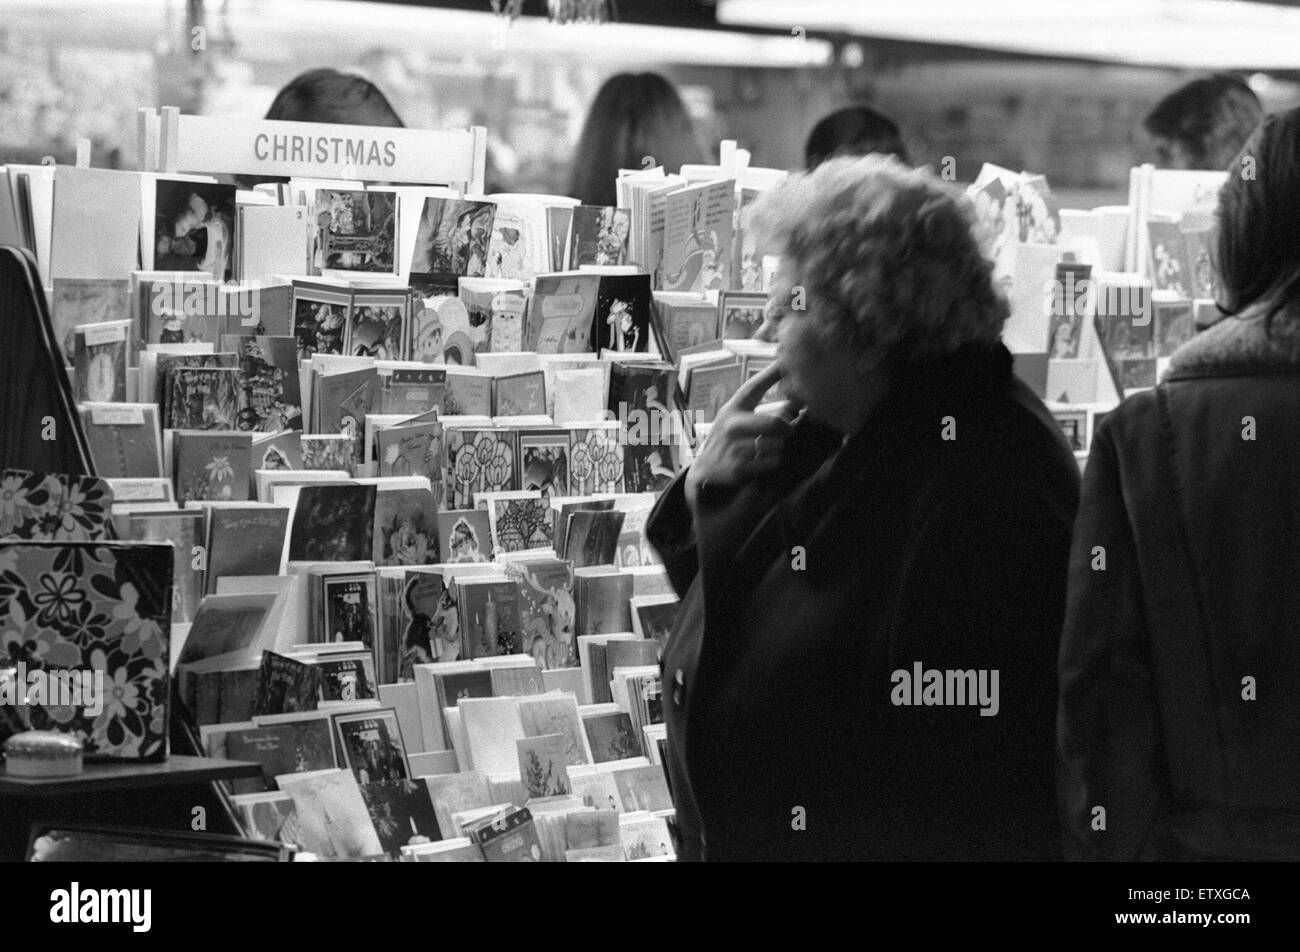 Christmas card shopping in Birmingham. 21st December 1973 - Stock Image